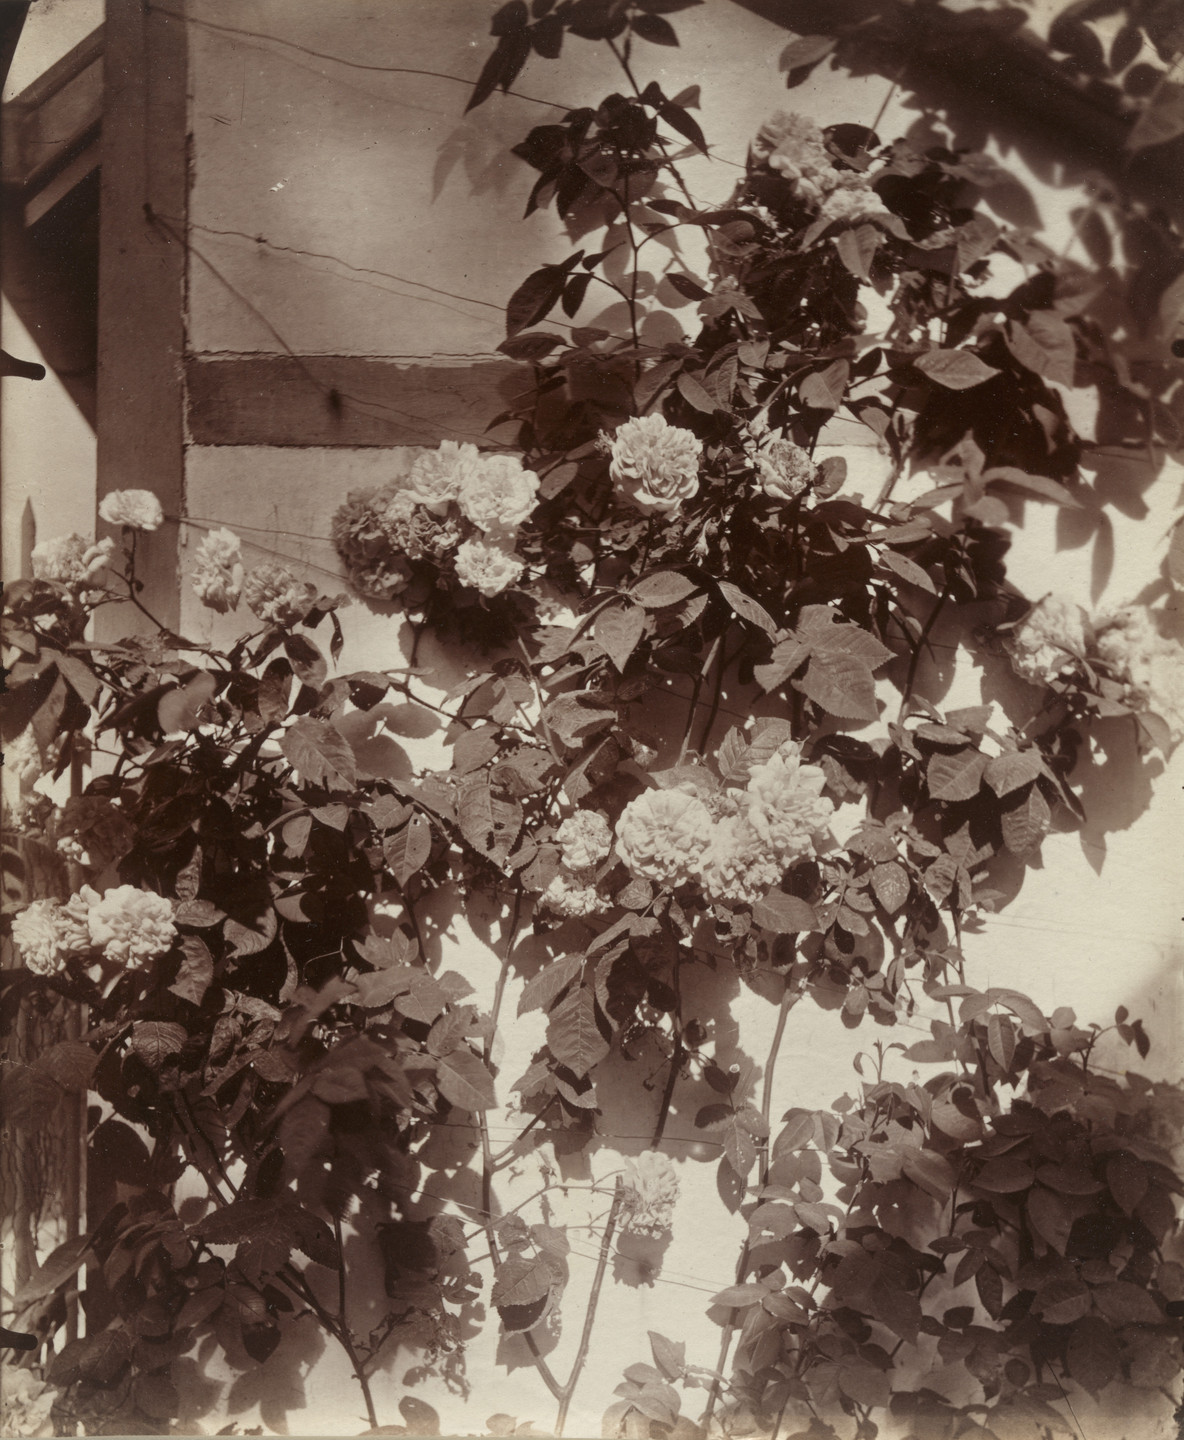 Eugène Atget. Rosier grimpant. Before 1900